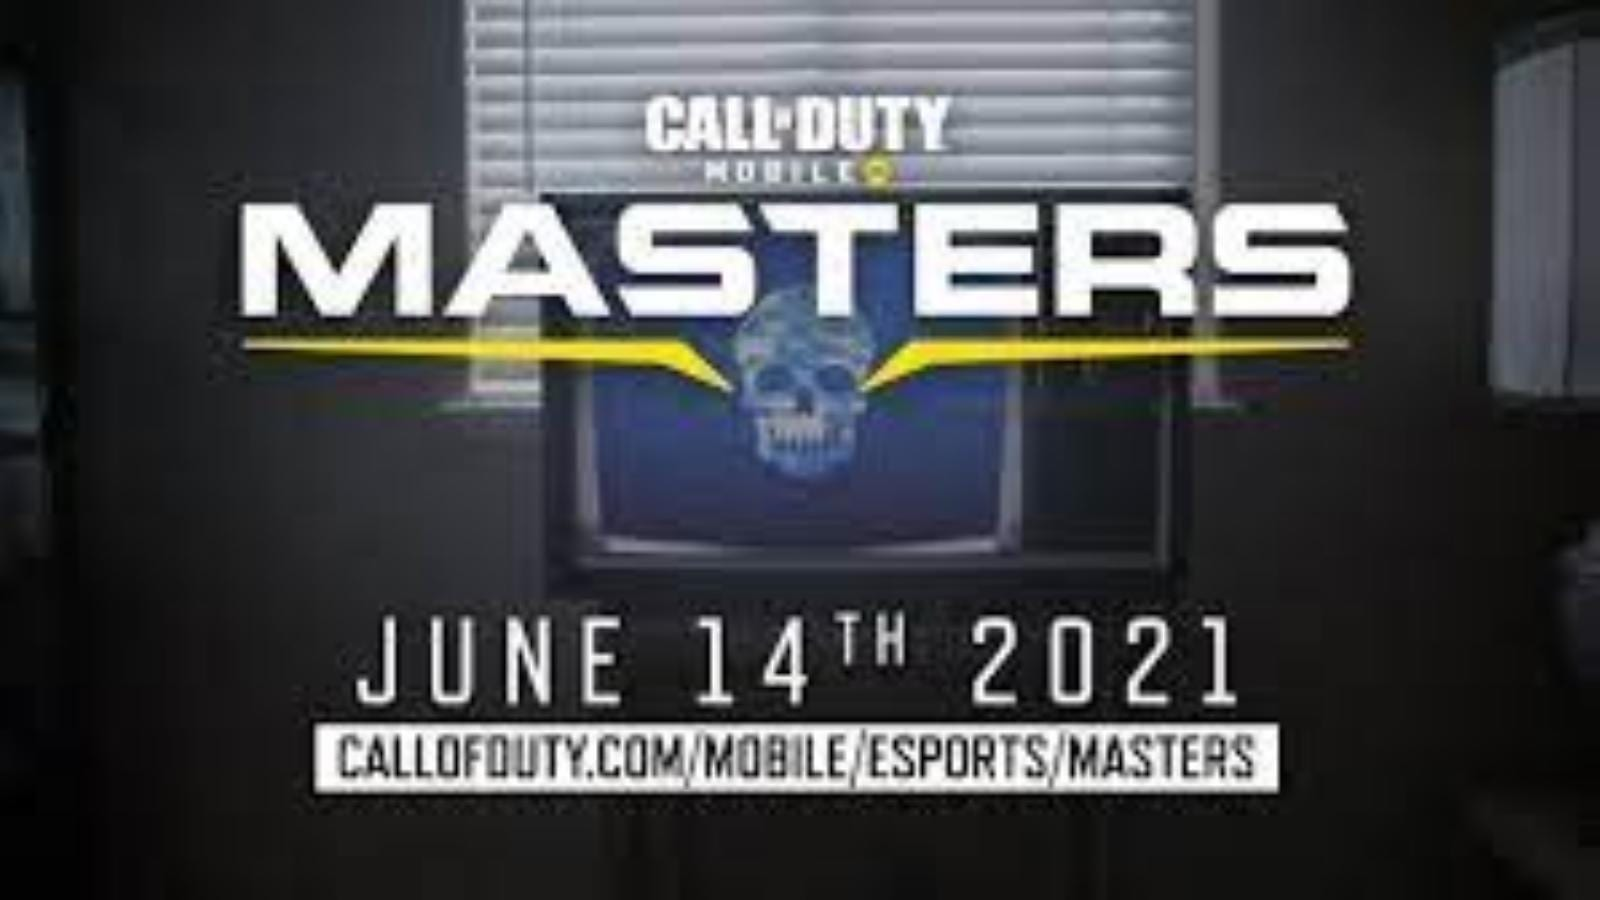 Call of Duty Mobile Masters 2021